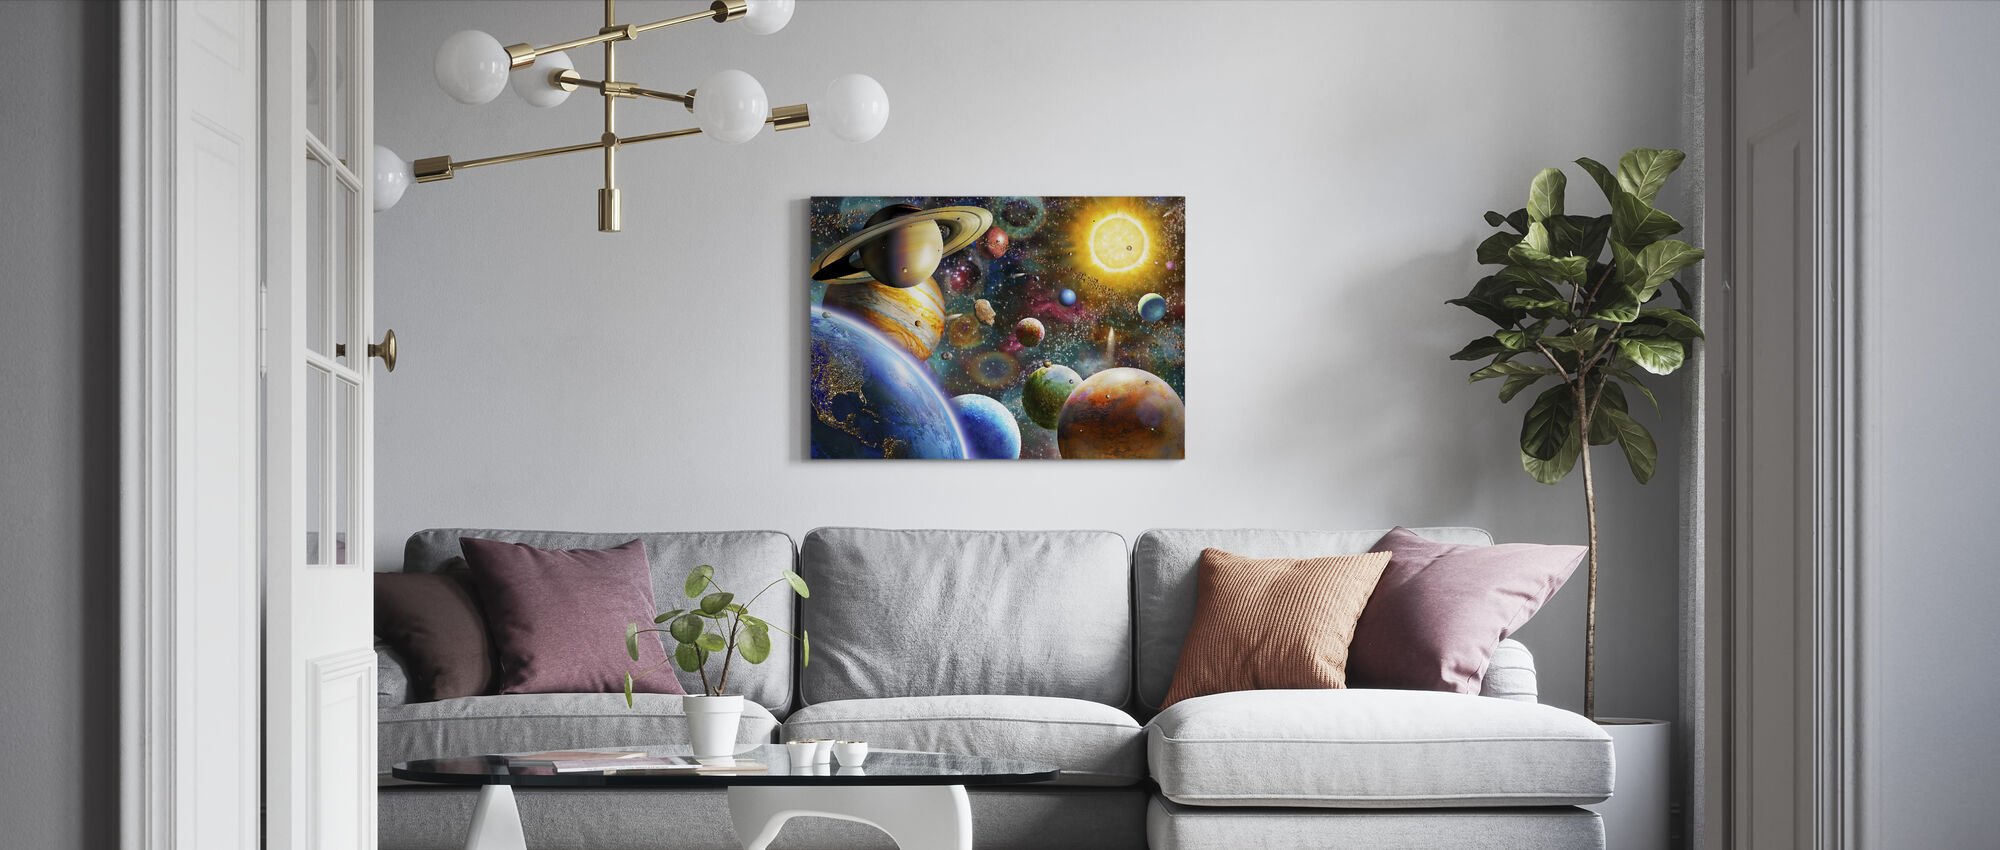 Planets in Space - Canvas print - Living Room